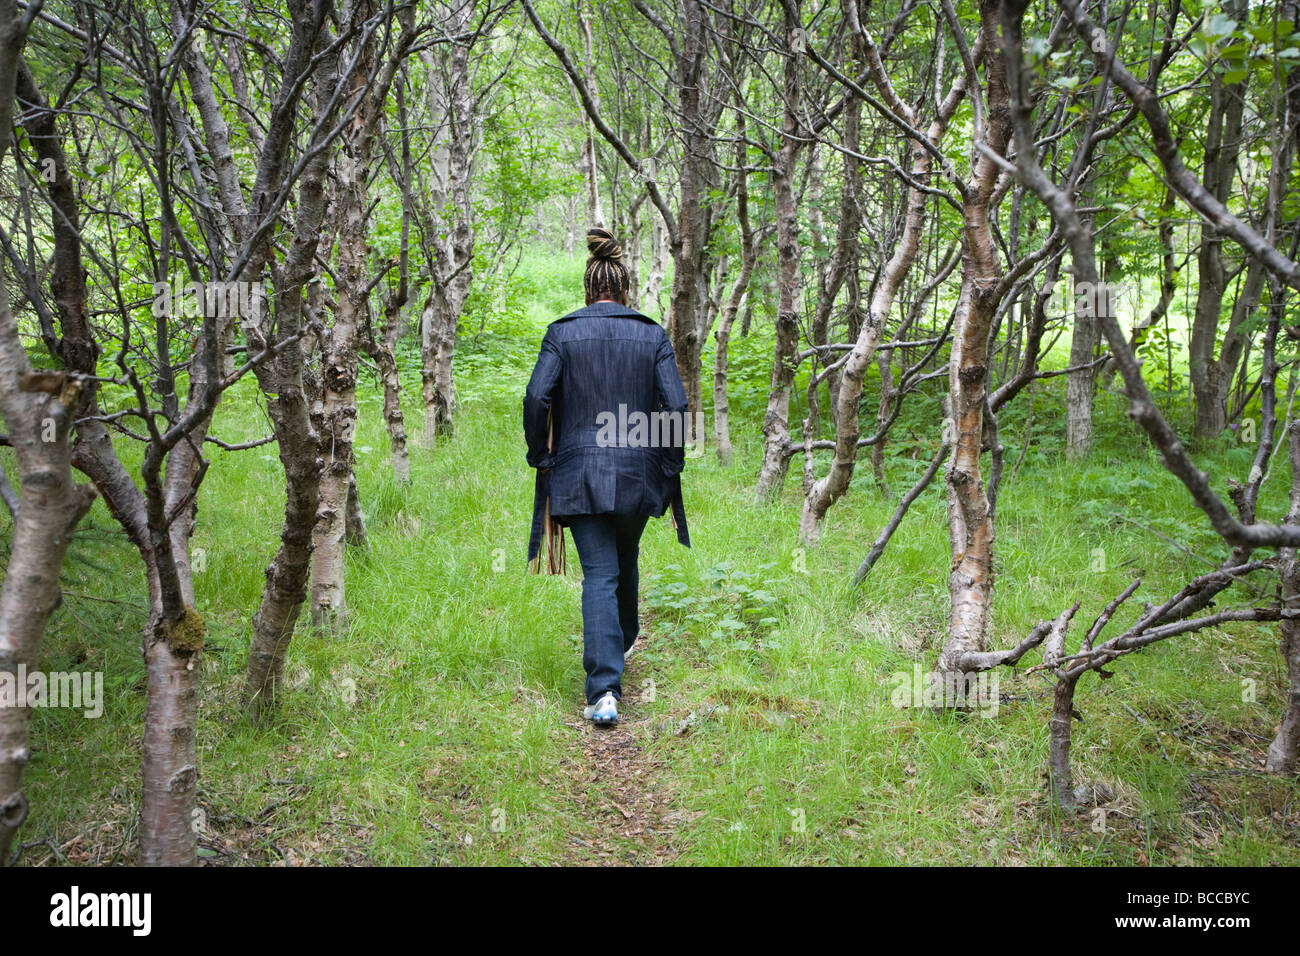 Woman walking in Birchwood (Betula) forest Iceland - Stock Image